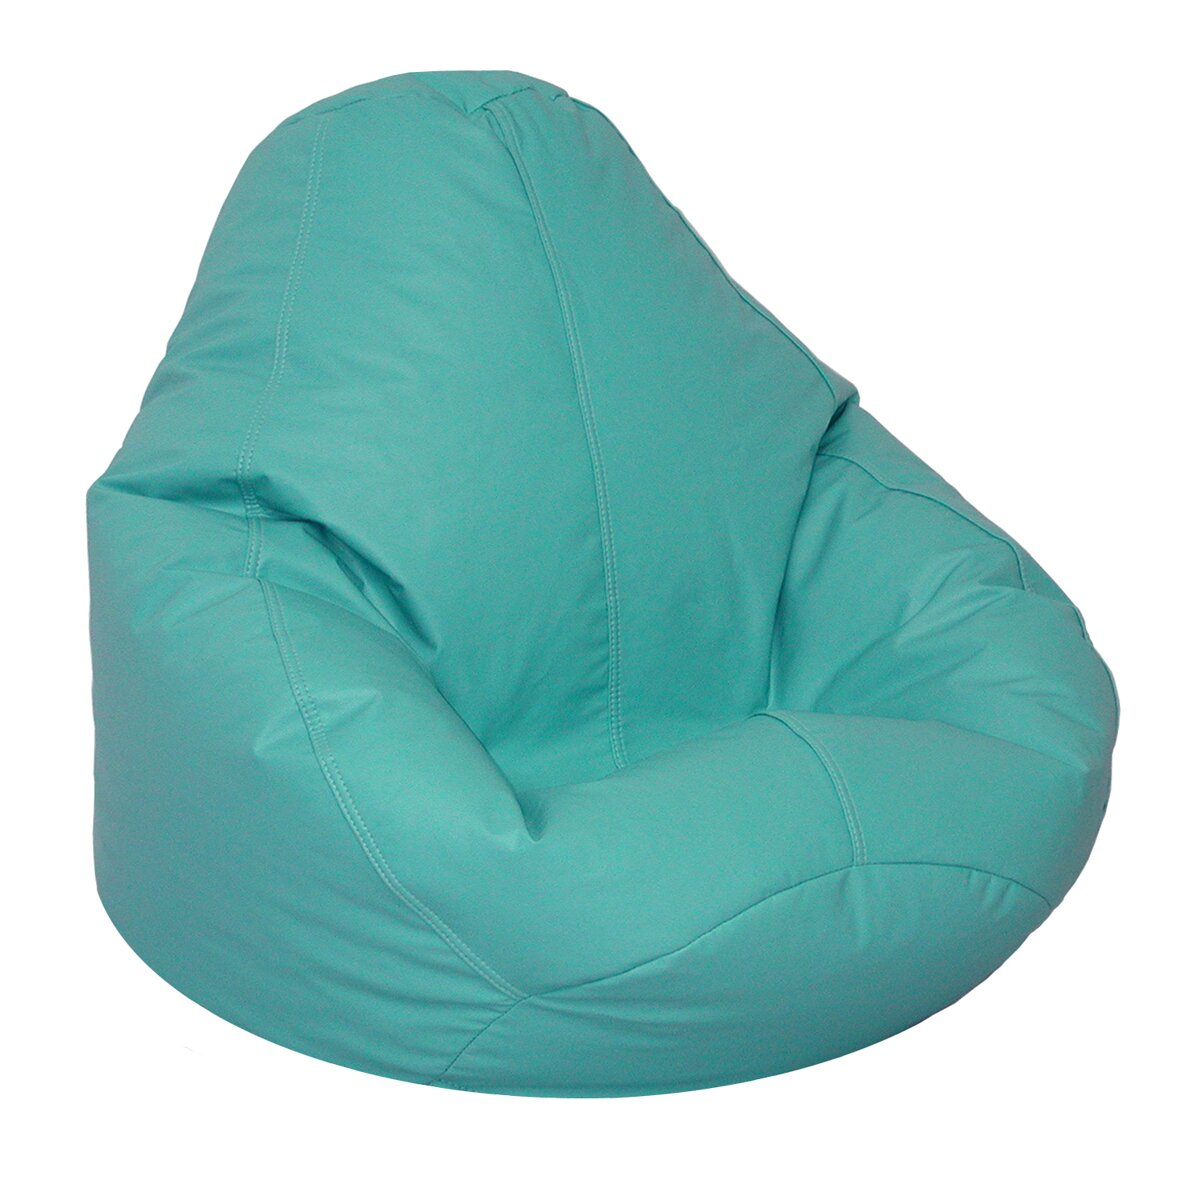 Elite Products Lifestyle Bean Bag Lounger Amp Reviews Wayfair